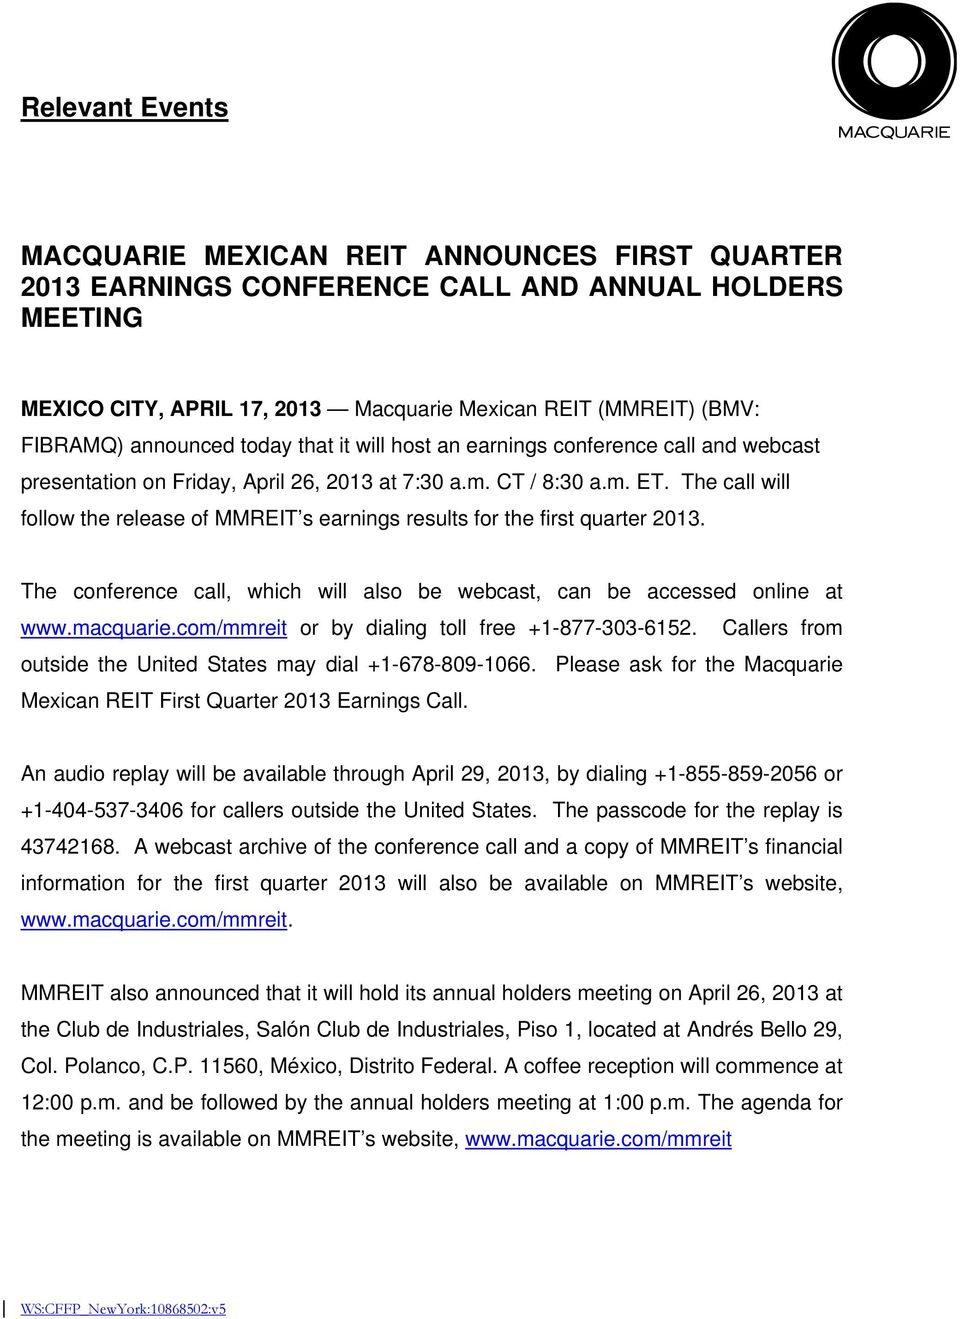 The call will follow the release of MMREIT s earnings results for the first quarter 2013. The conference call, which will also be webcast, can be accessed online at www.macquarie.